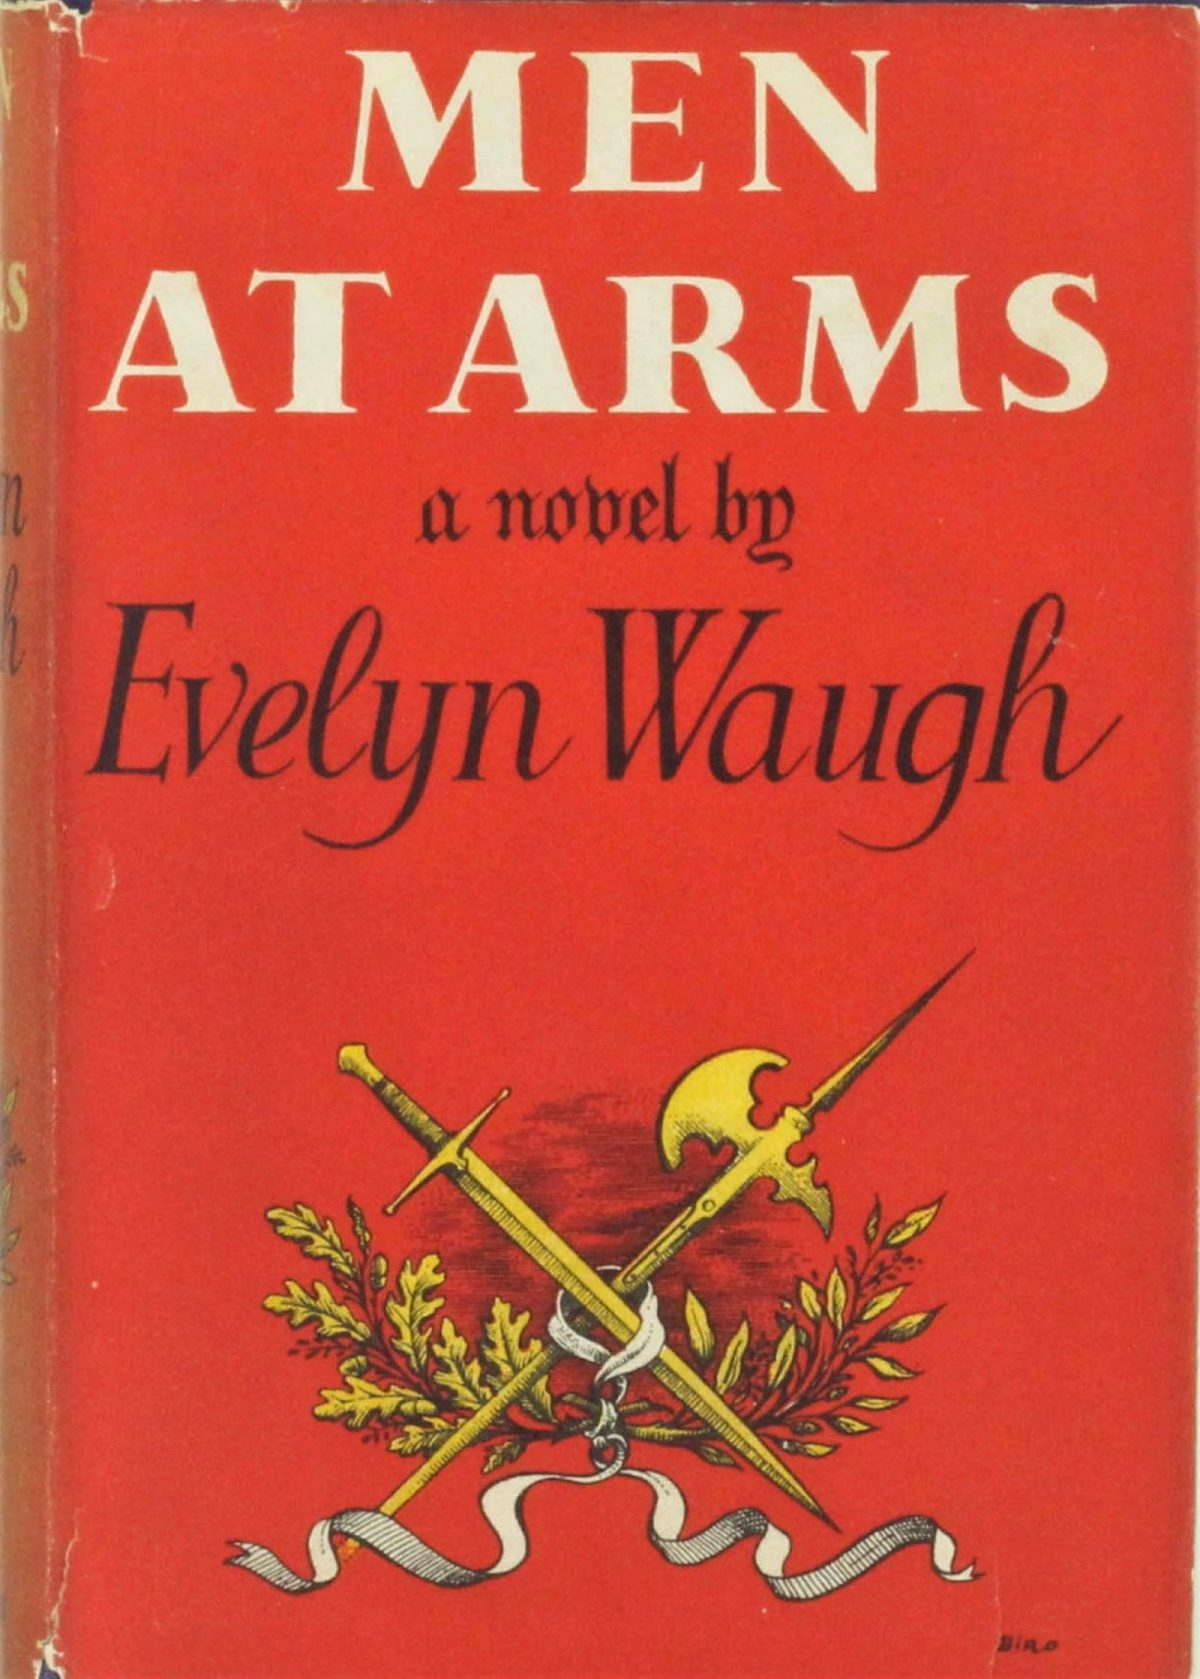 Evelyn Waugh, Men at Arms, books, writers, Duncan McLaren